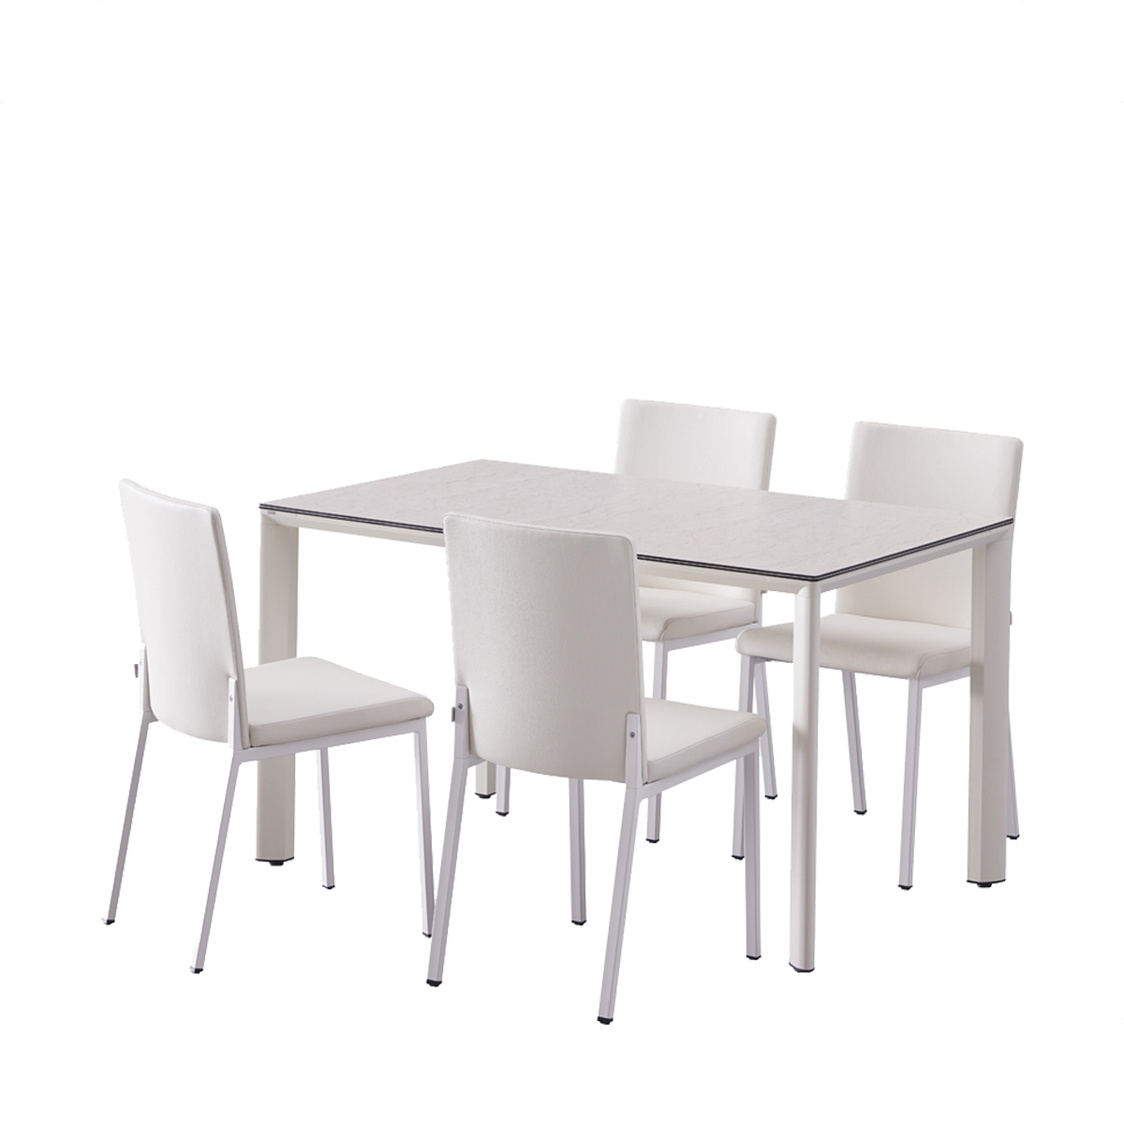 Iloom DELIC Dining Table for 4 CPM HT11T13ECN-IMIIV